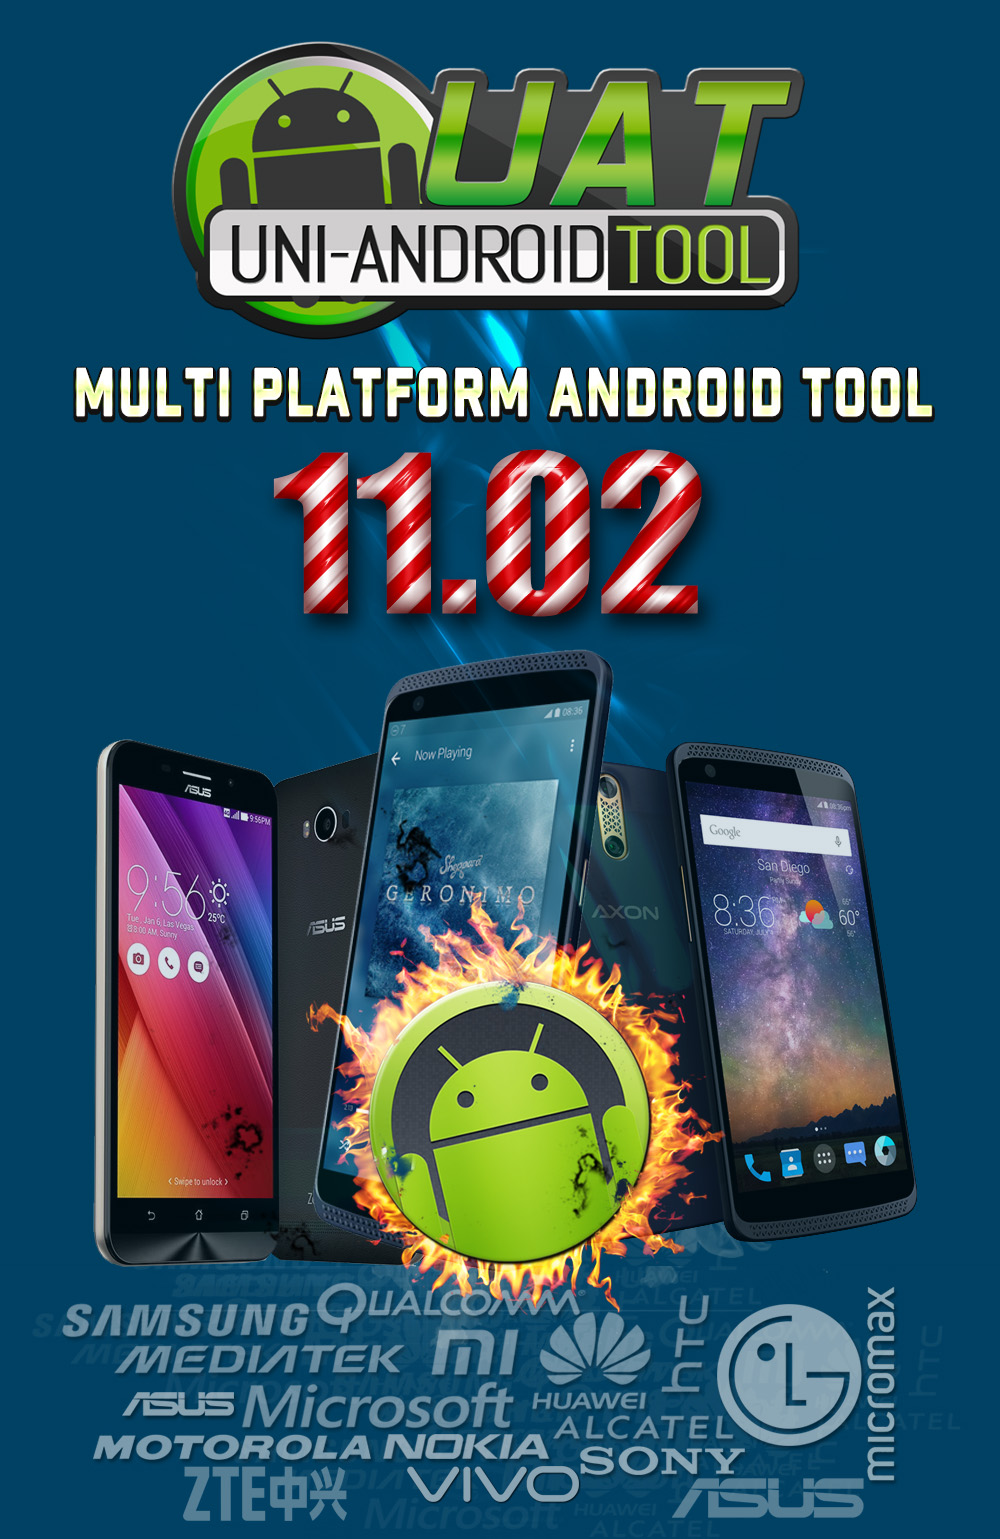 Uni-Android Tool [UAT] Version 11.02 Released [27/12/2017]